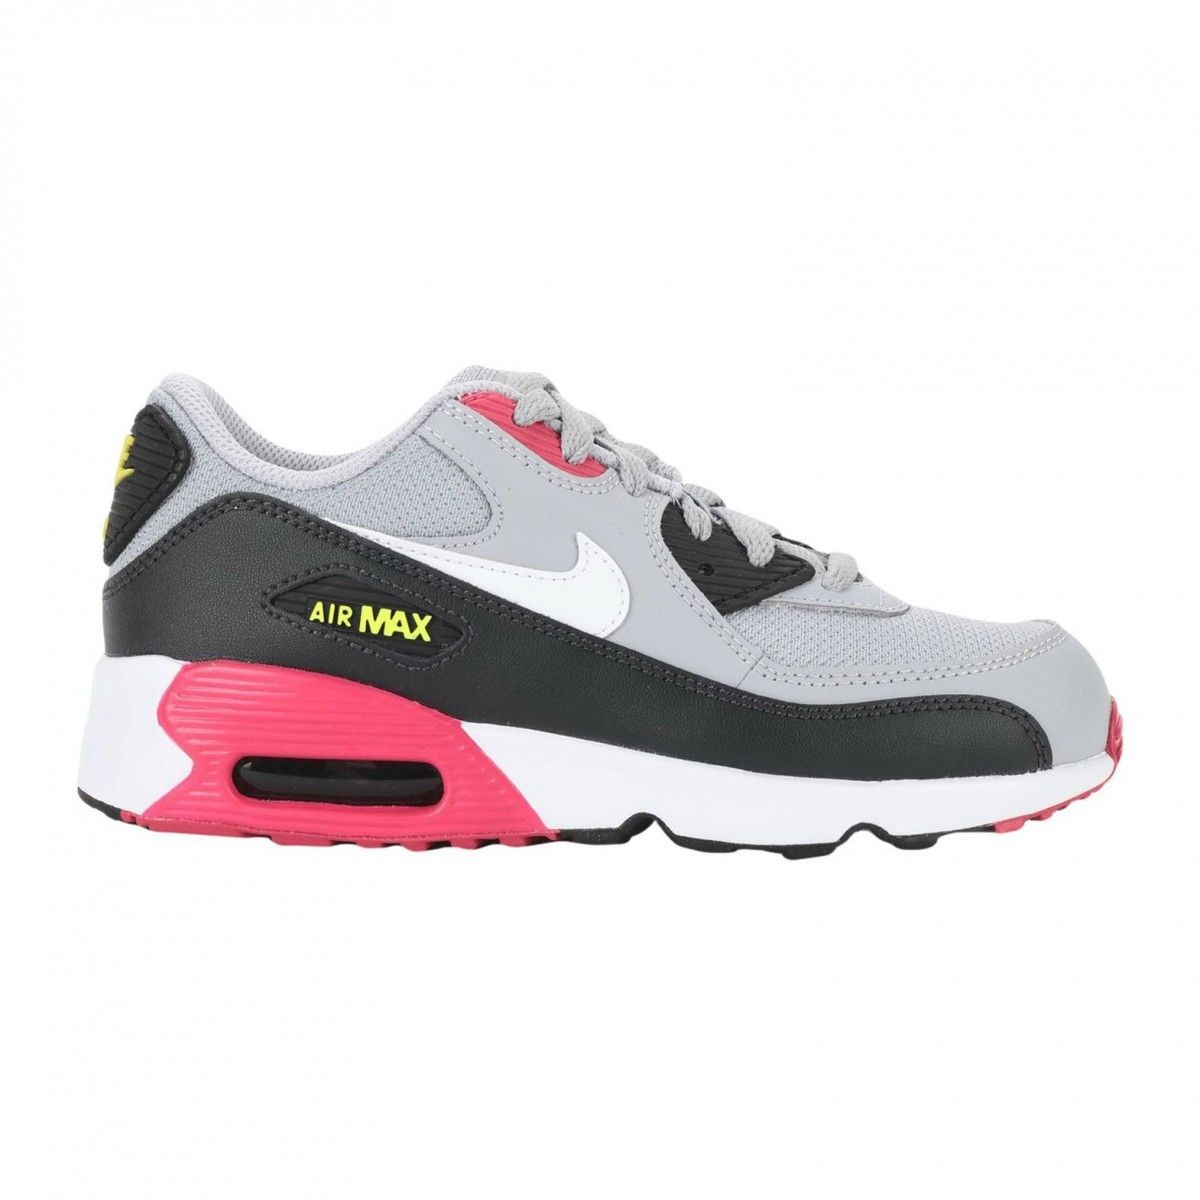 Basket Mode Air Max 90 Mesh (ps) - Taille : 28;28 1/2;29 1/2 ...